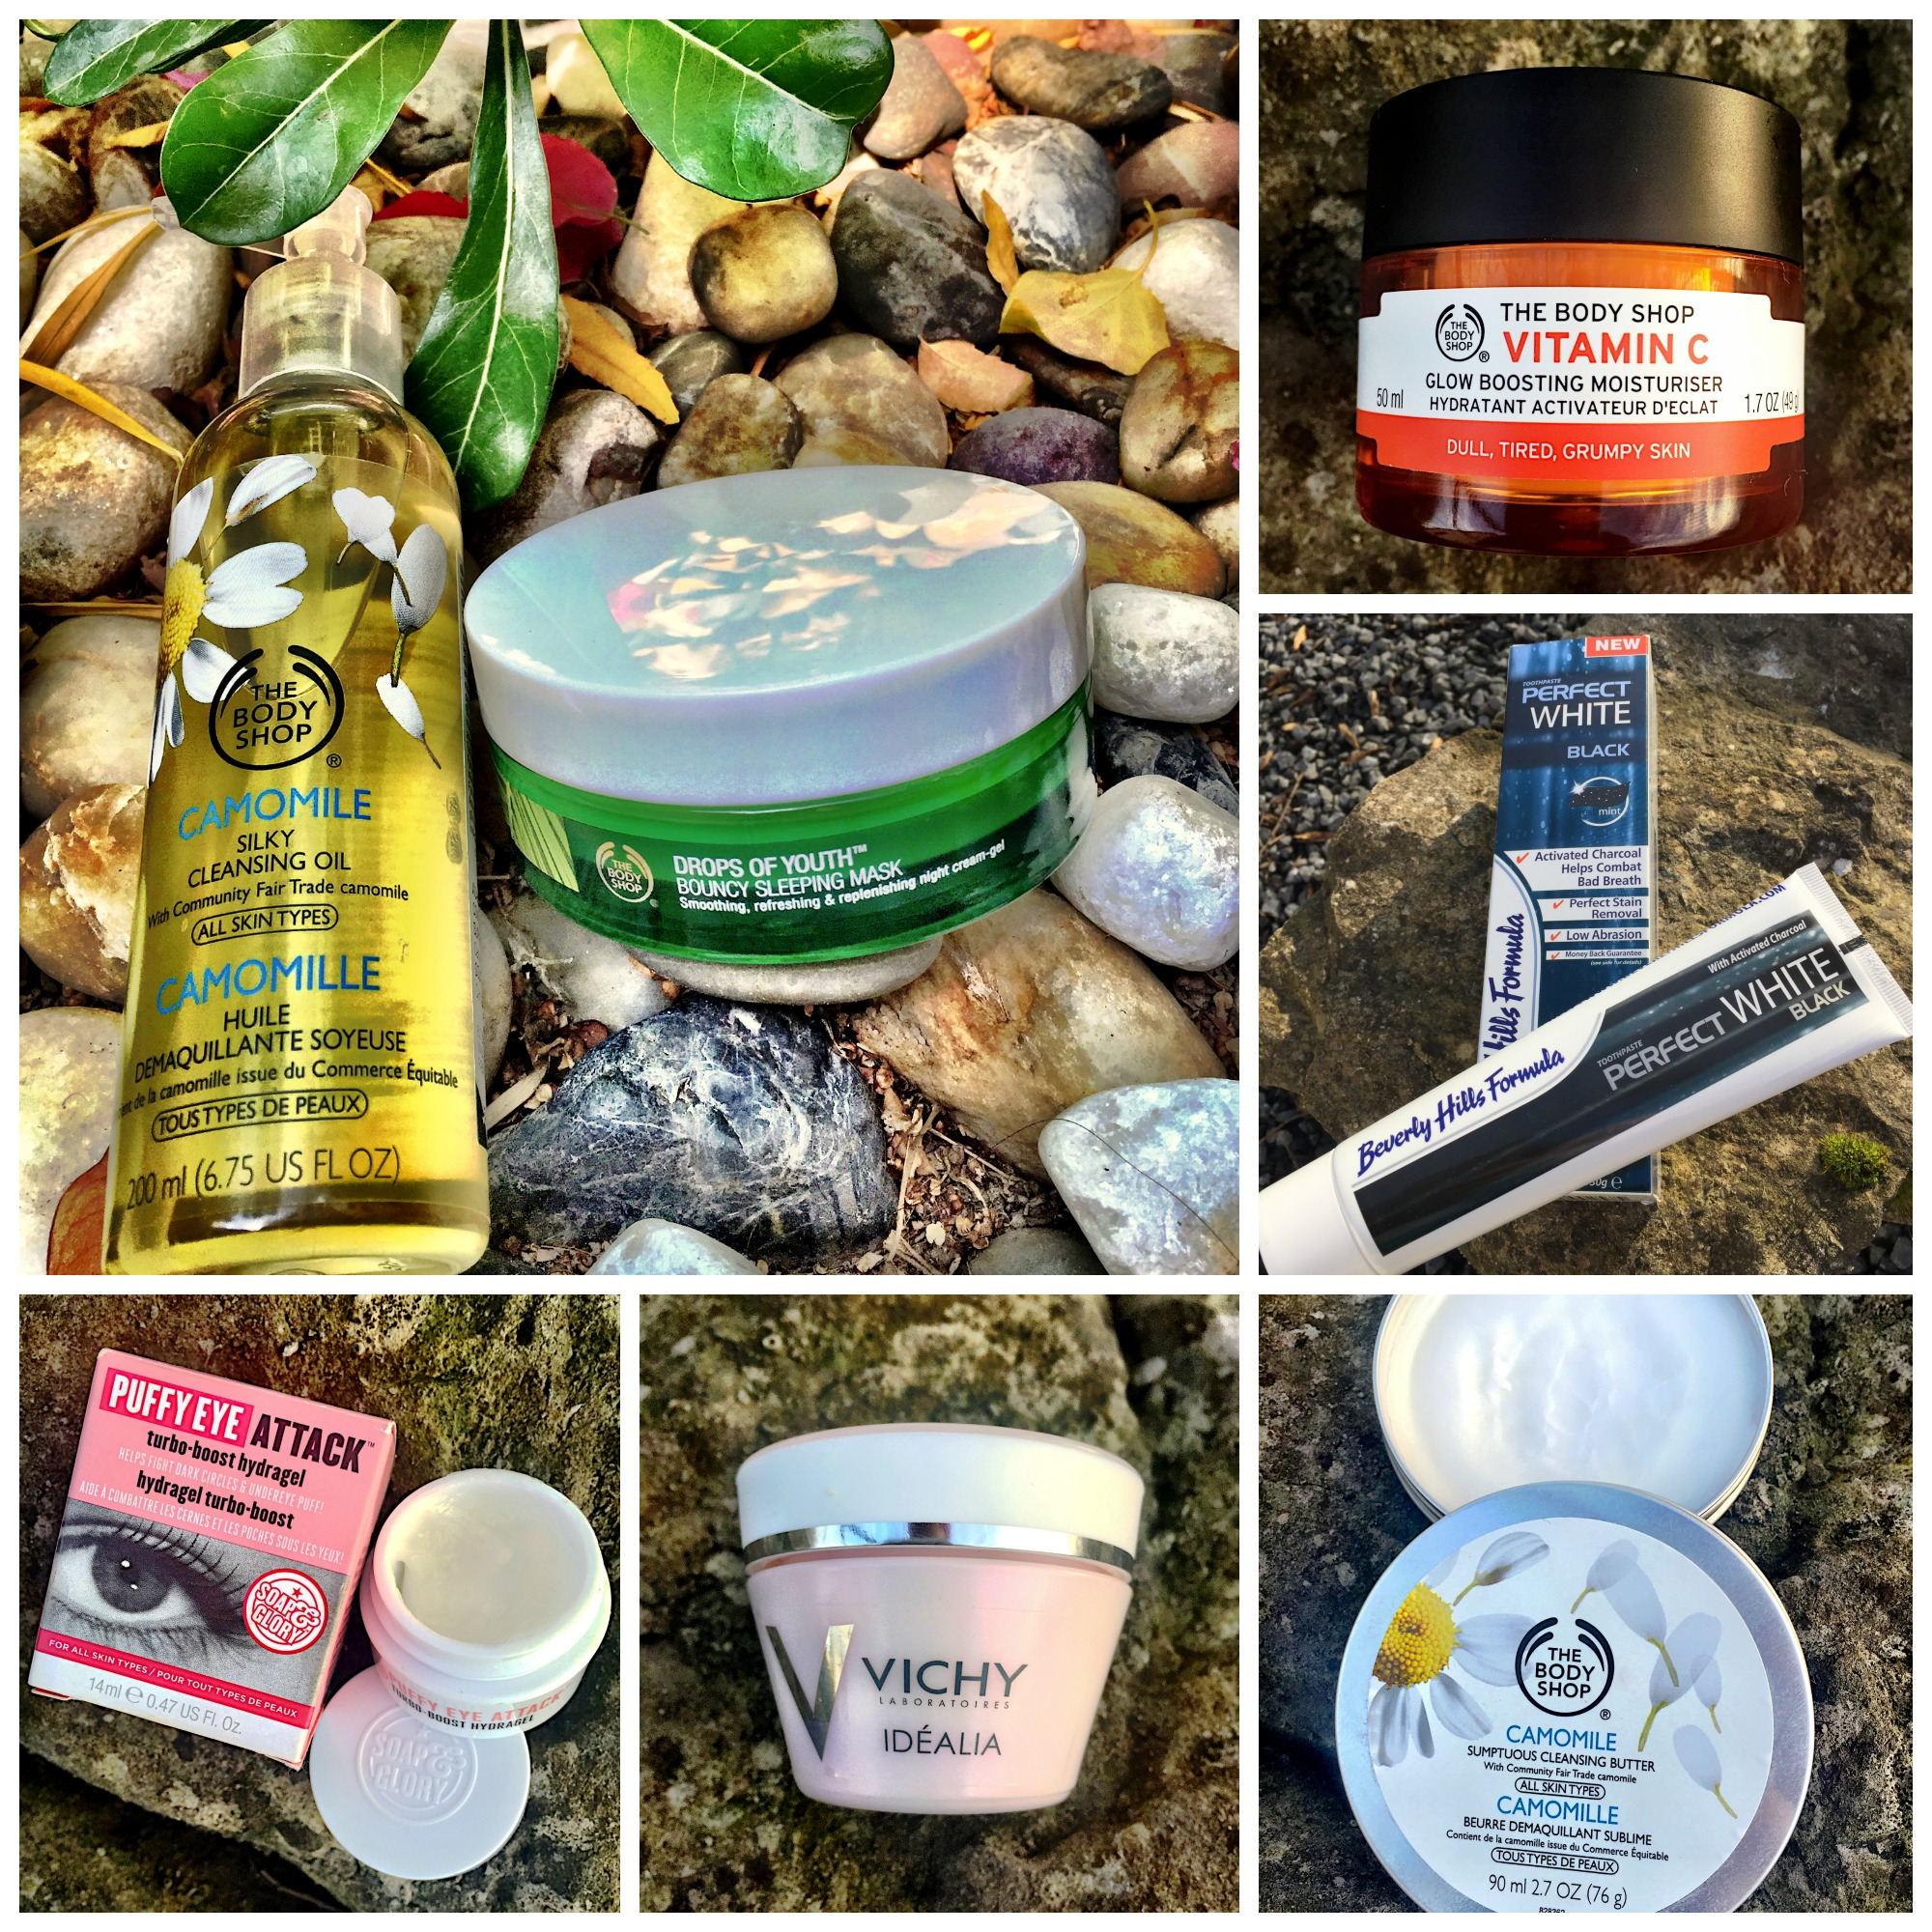 pic-monkey-collage-beauty-junkie-products-review-gingham-and-sparkle-skin-skincare-face-facial-body-shop-vichy-beverly-hills-formula-whitening-teeth-black-vitamin-c-cleanser-moisturiser-eye-cream-gel-blogger-dubai-ireland-blog-post